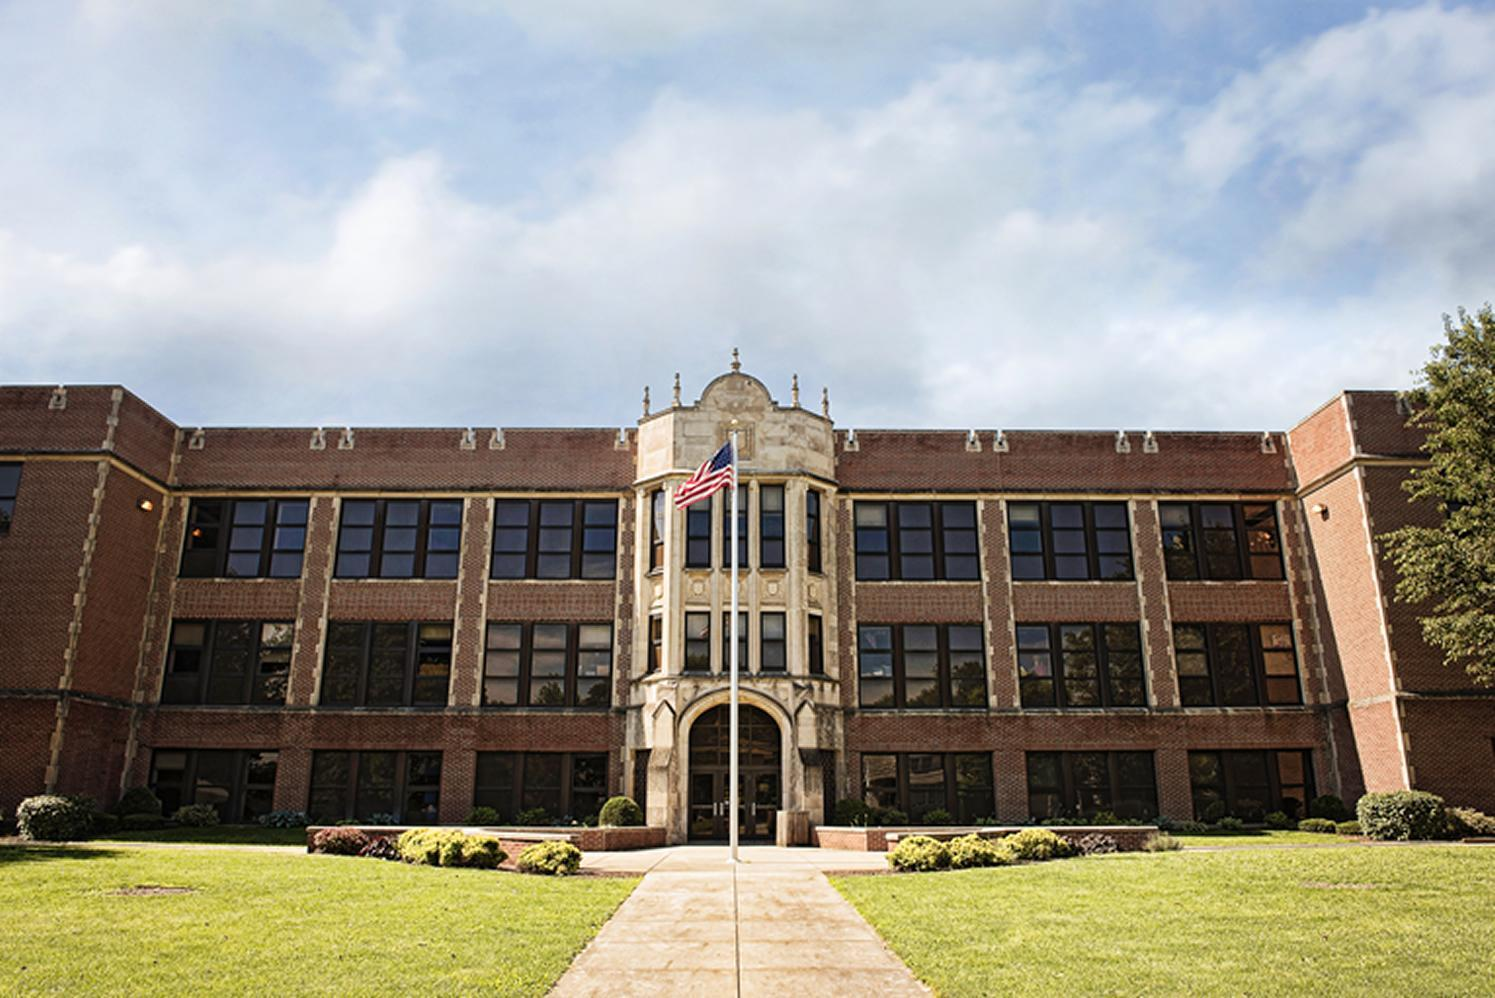 Carlinville High School